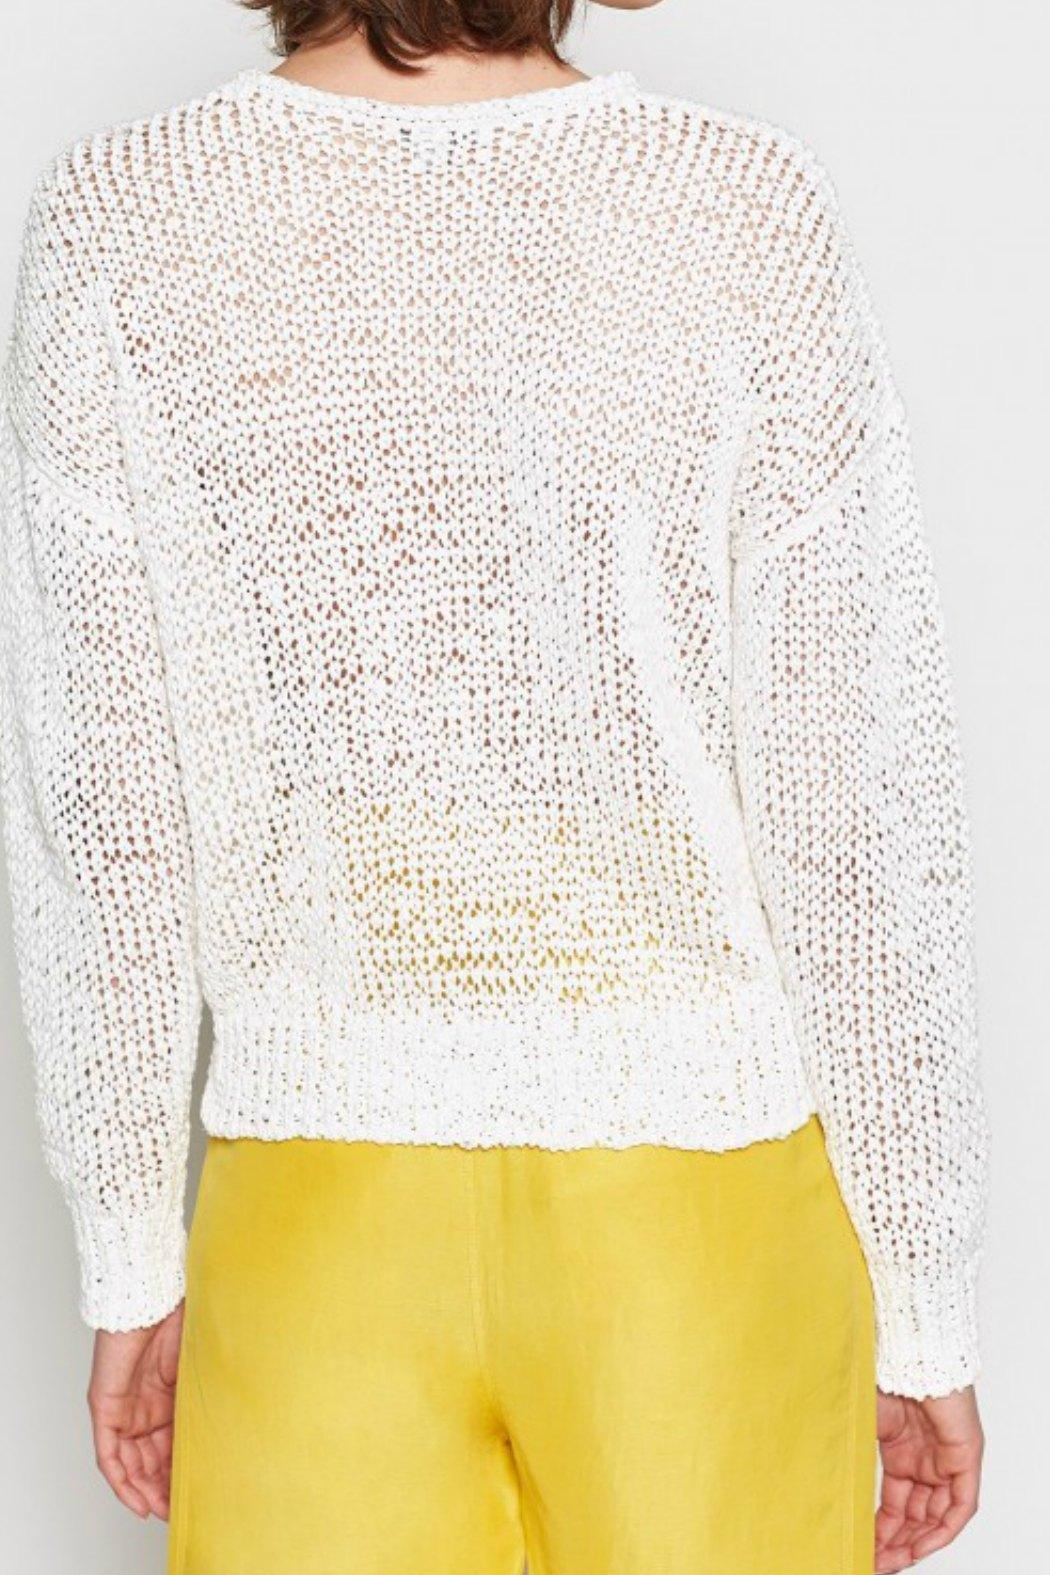 Joie Burney Summer Sweater - Back Cropped Image